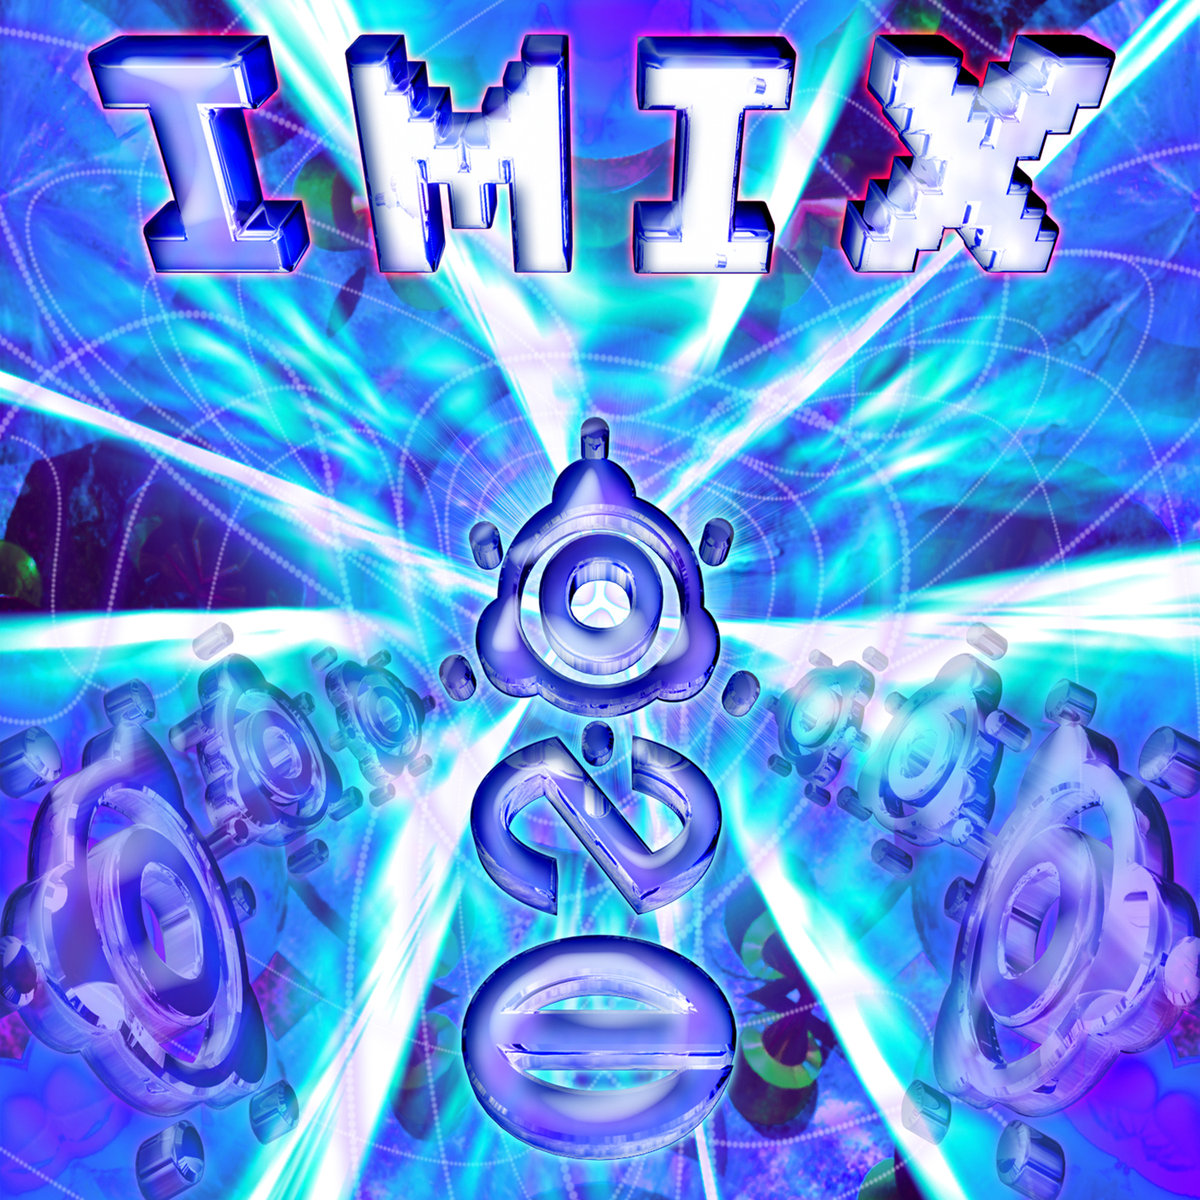 Imix - Once Again @ 'One' album (electronic, geomagnetic)